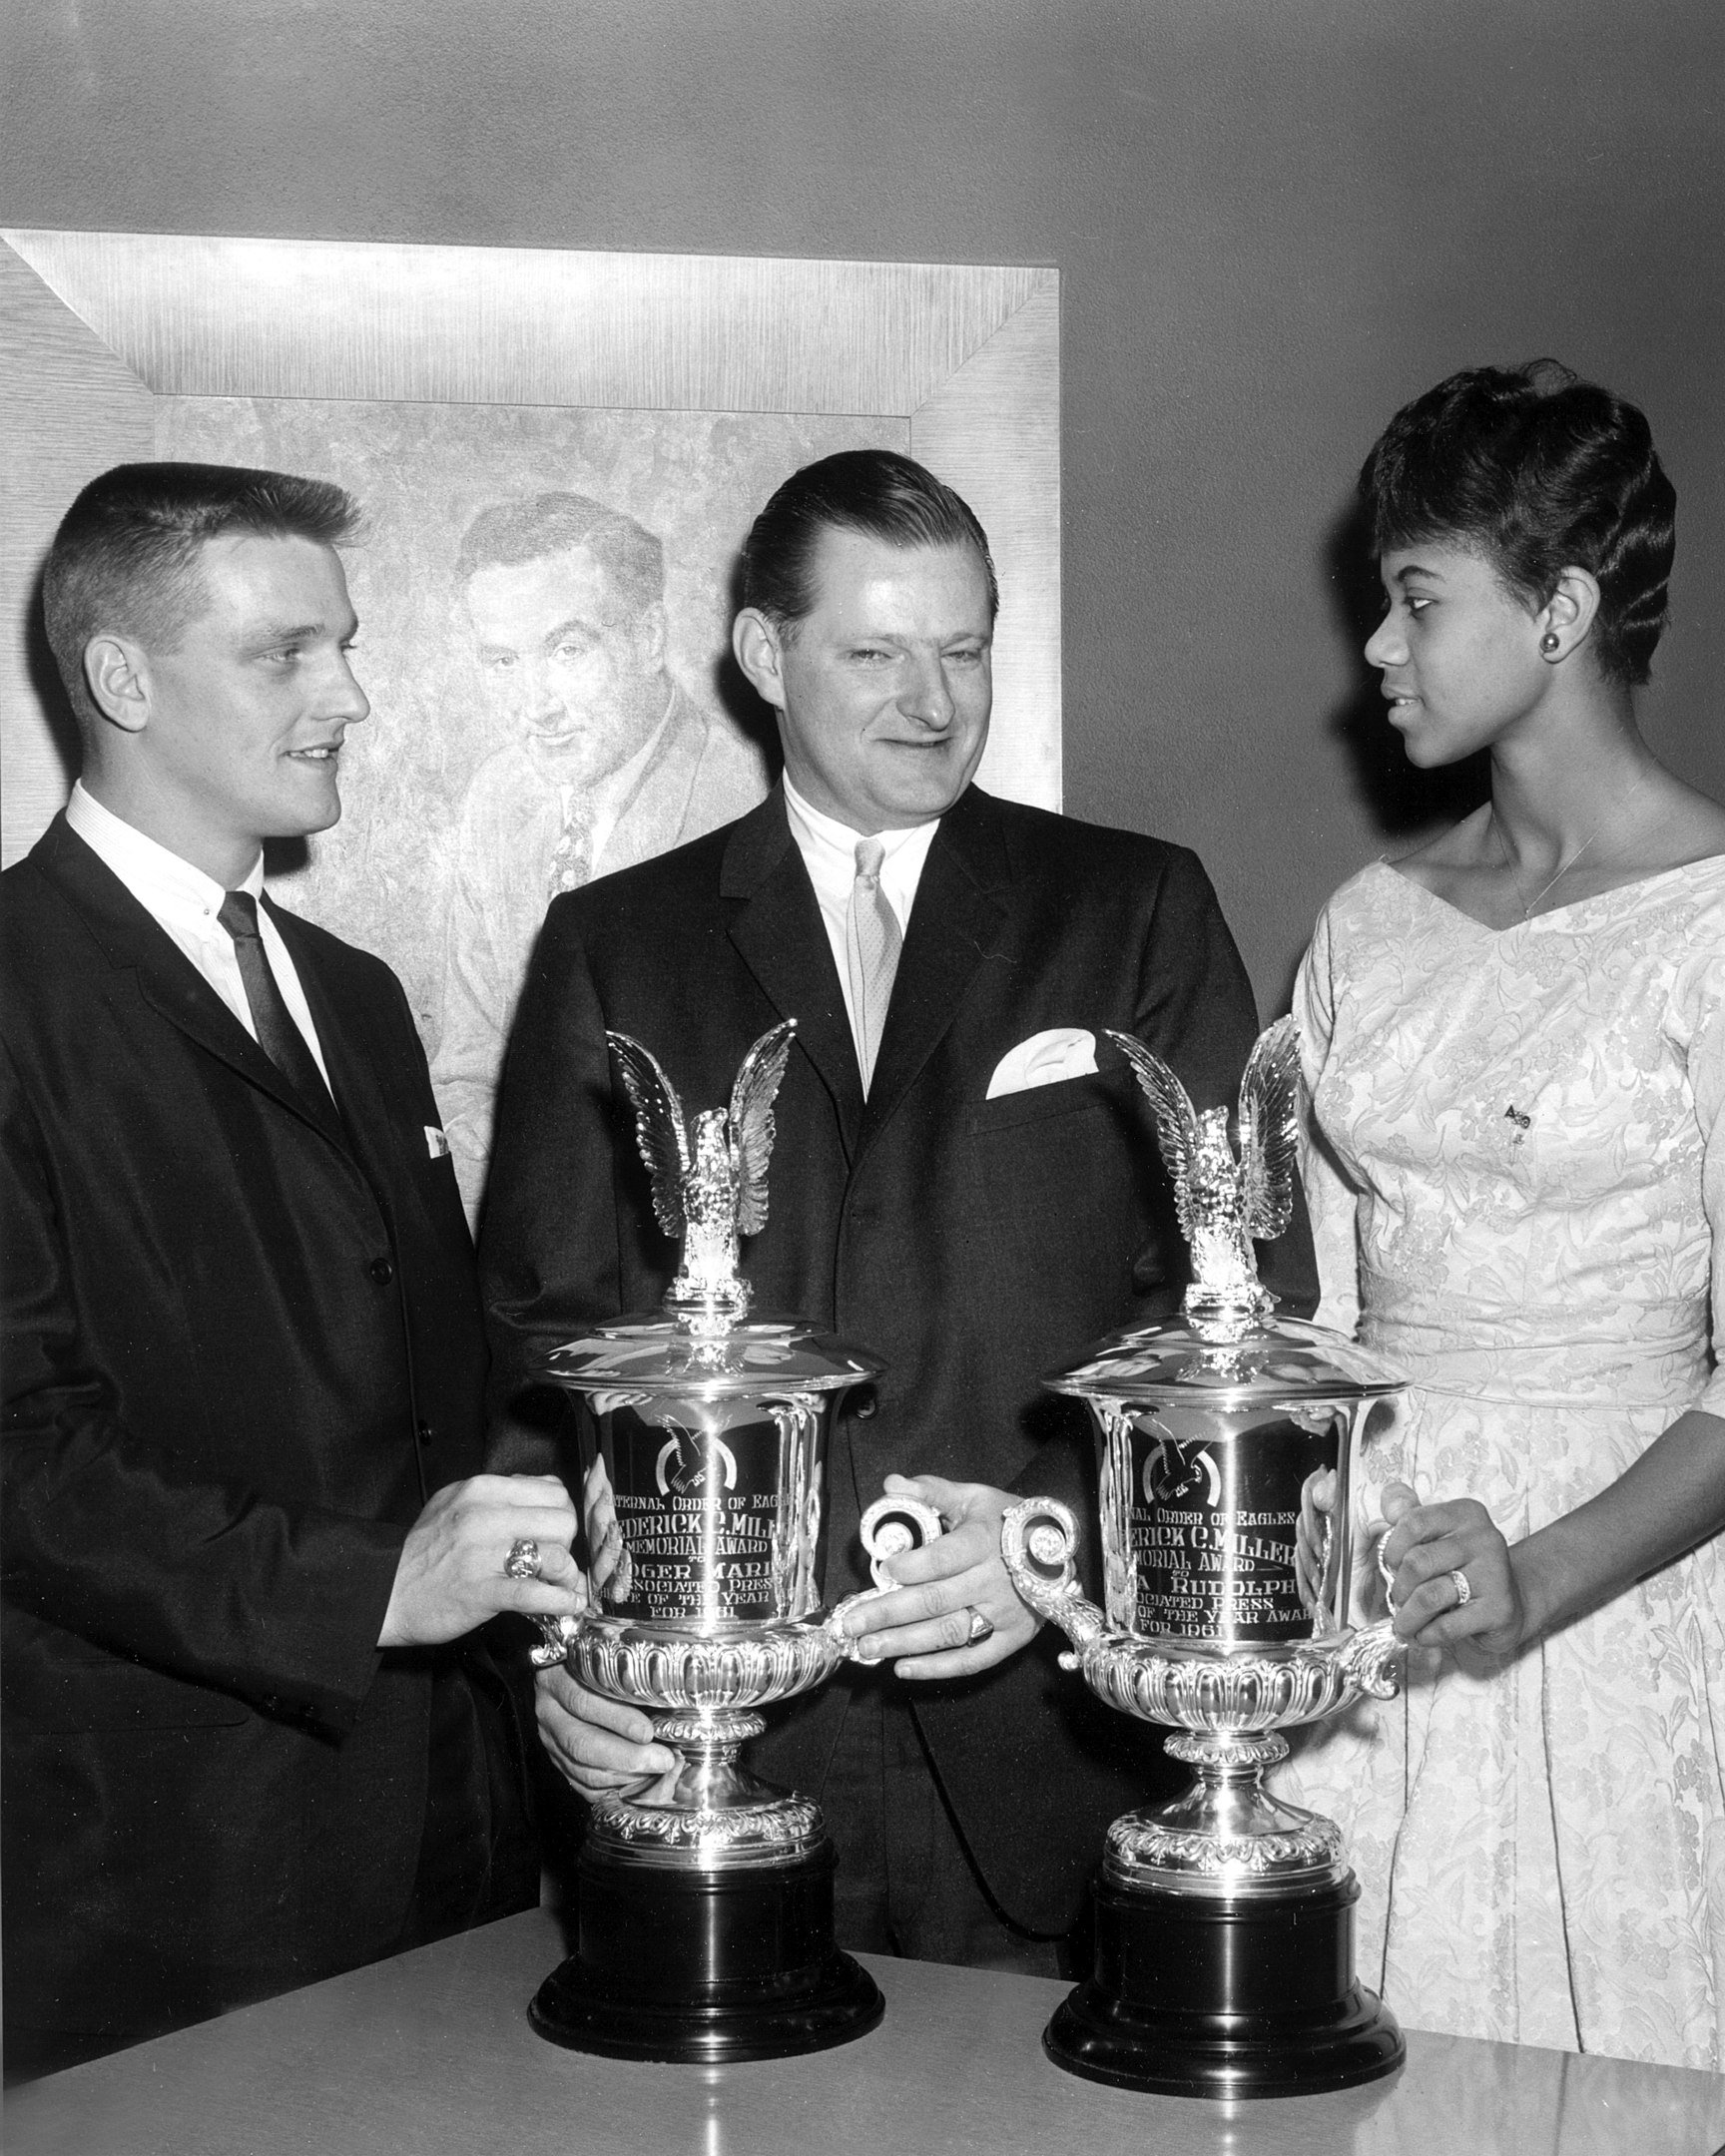 Wilma Rudolph receives the Fraternal Order of Eagles Award 1961 alongside Roger Maris   Photo: Wikimedia Commons Images, CC BY-SA 3.0